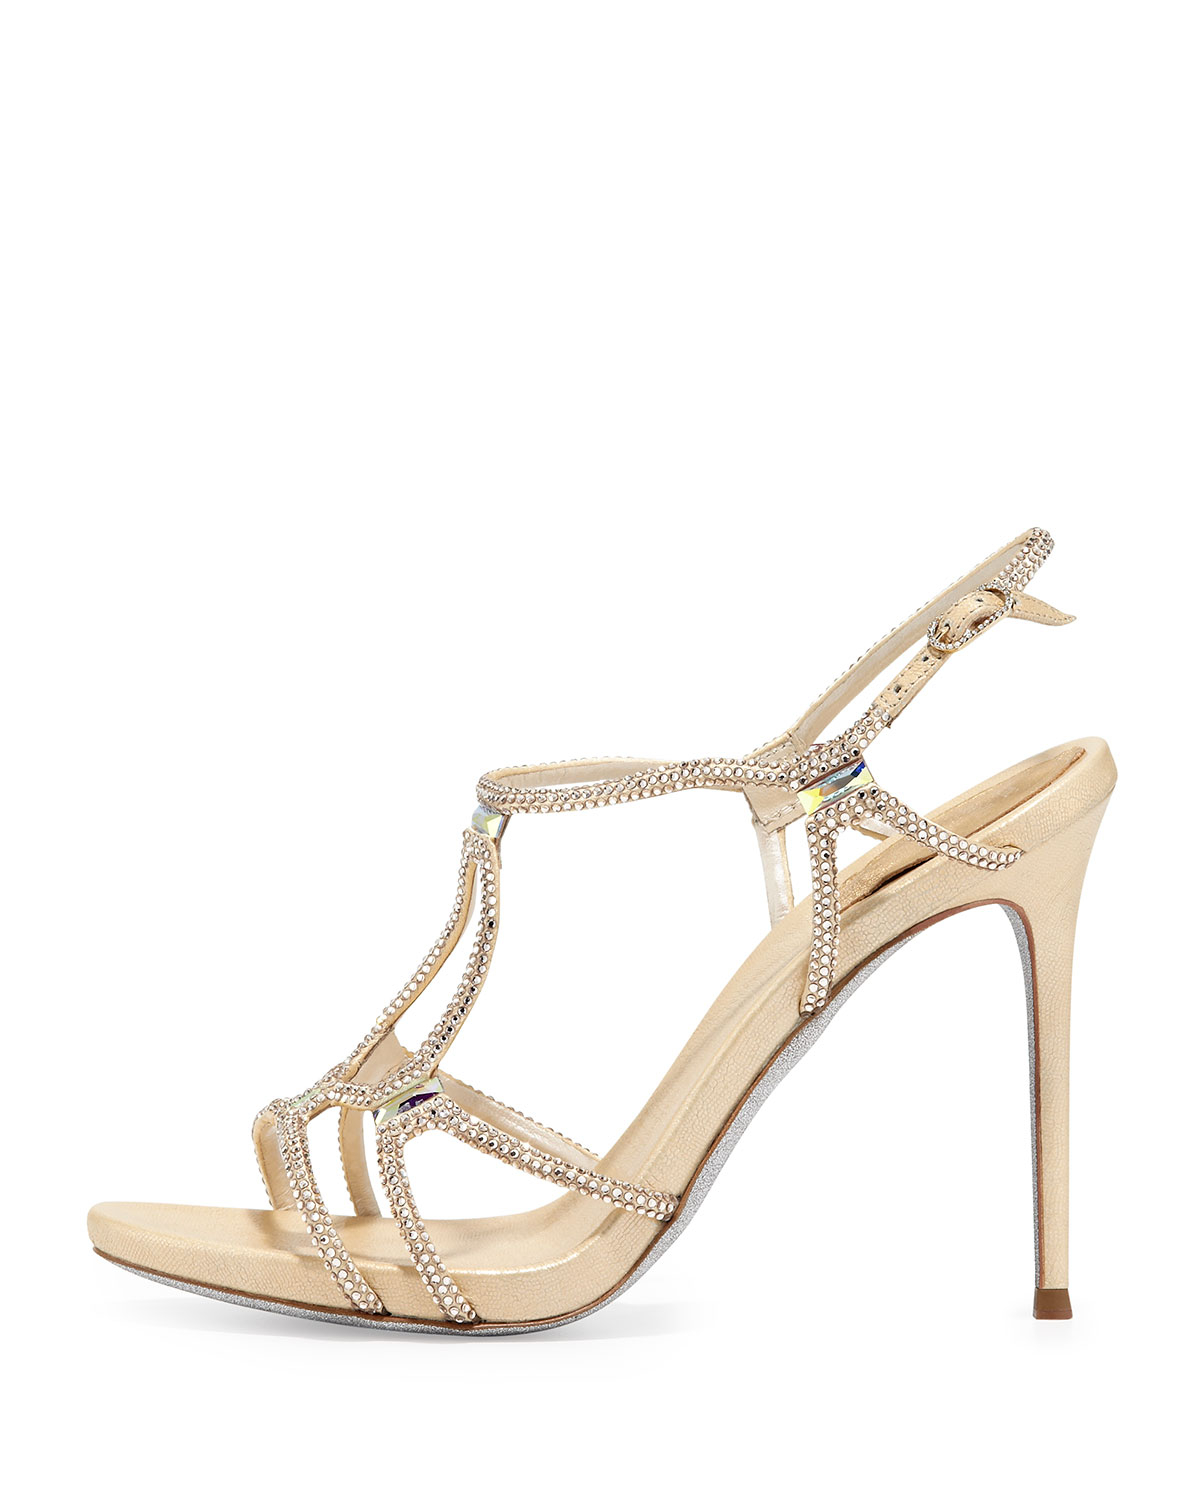 b79f4e850041e4 Lyst - Rene Caovilla Metallic Crystal Gladiator Sandal Gold in Metallic